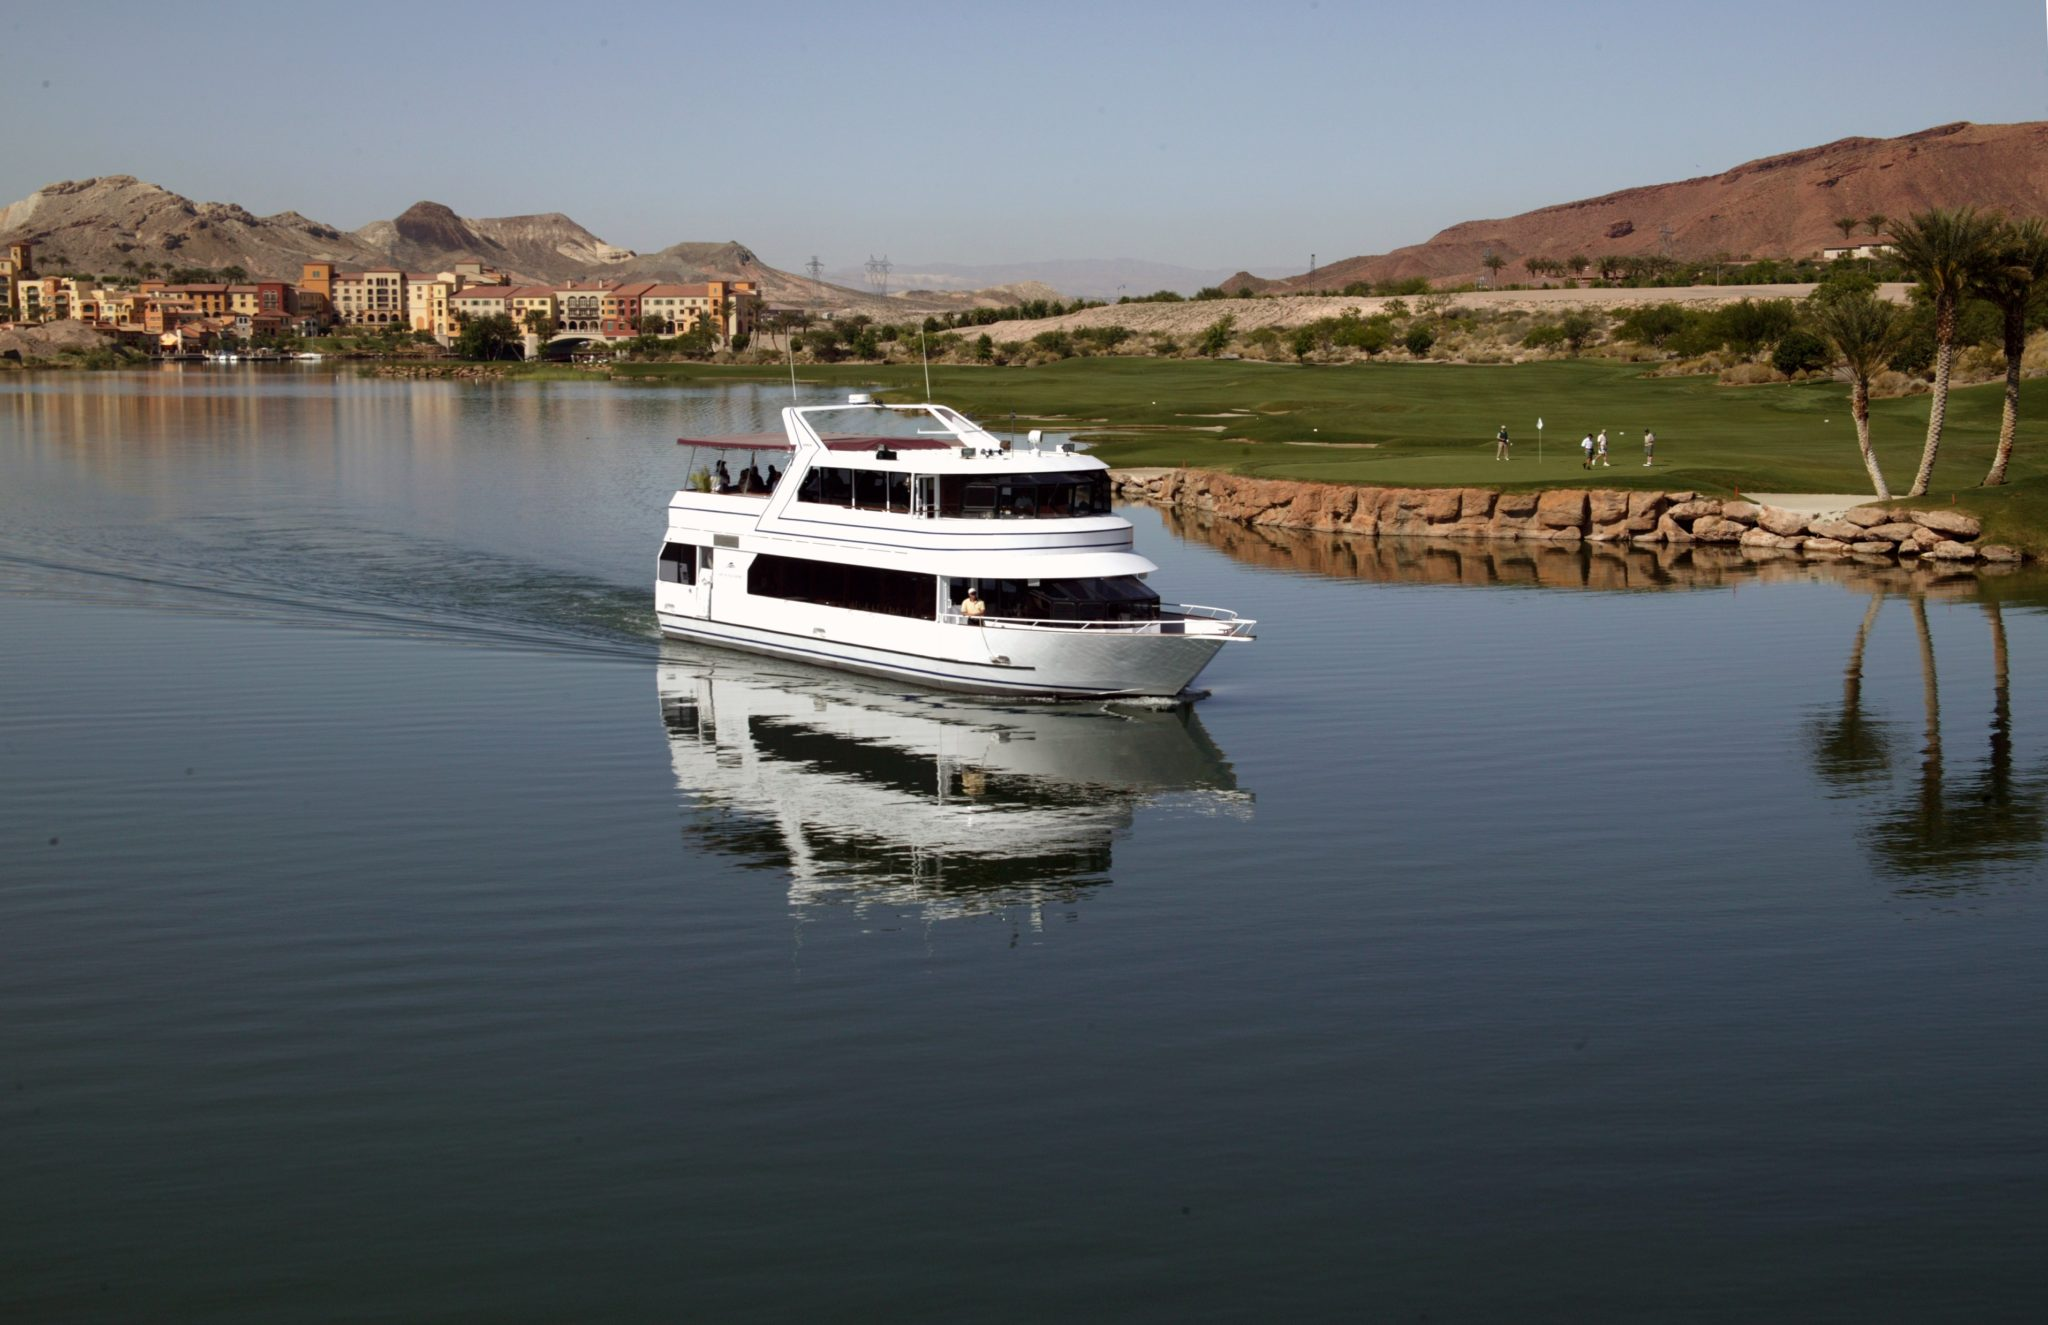 The Unique Event On Decorated La Contessa Yacht Will Sail Around 320 Acre Lake At Las Vegas